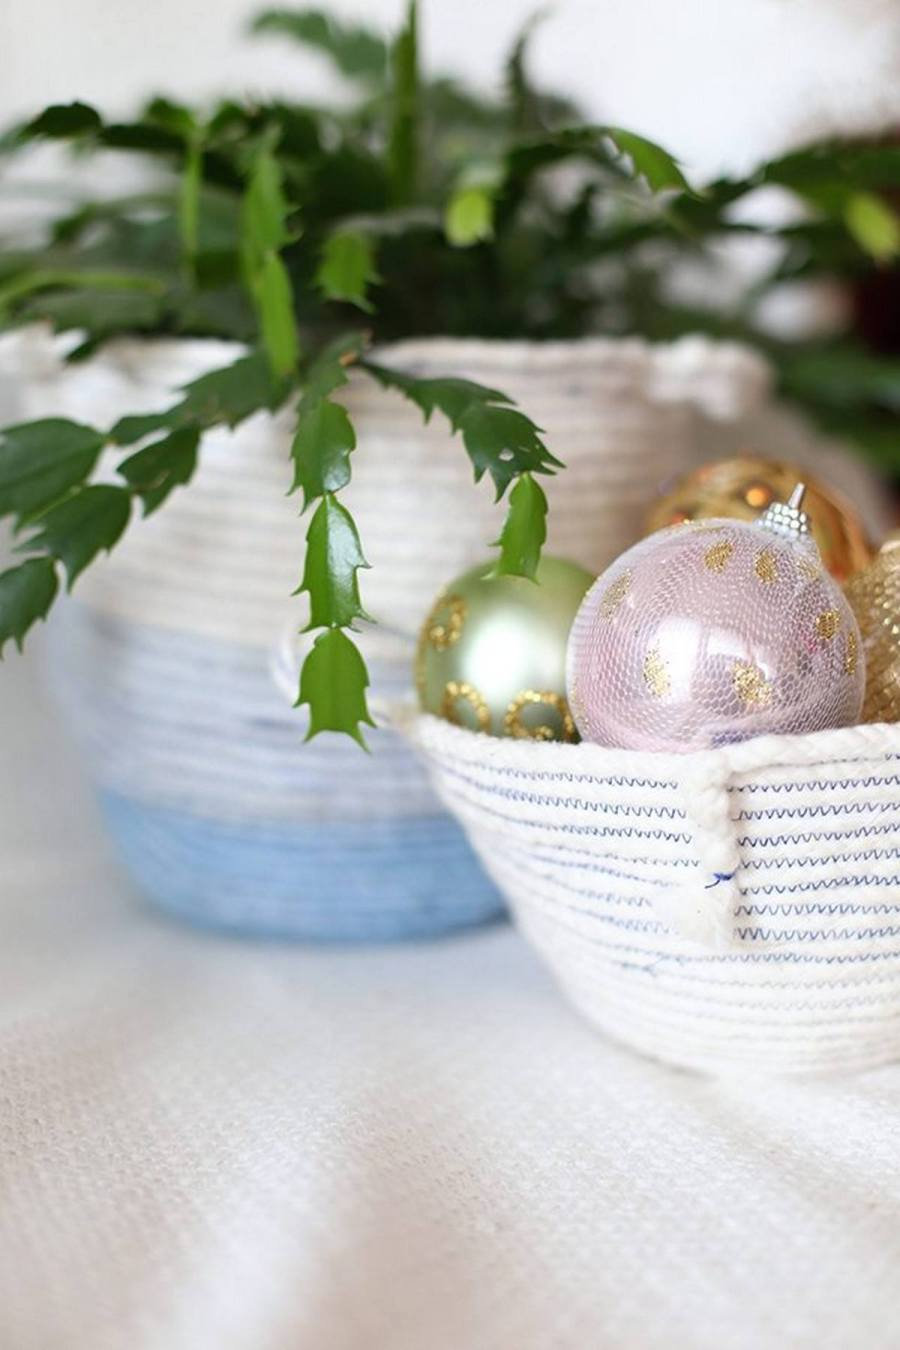 Baskets always bring a summer and a bit rustic feel to any space, whether they are straw, wicker, rope or any other ones.